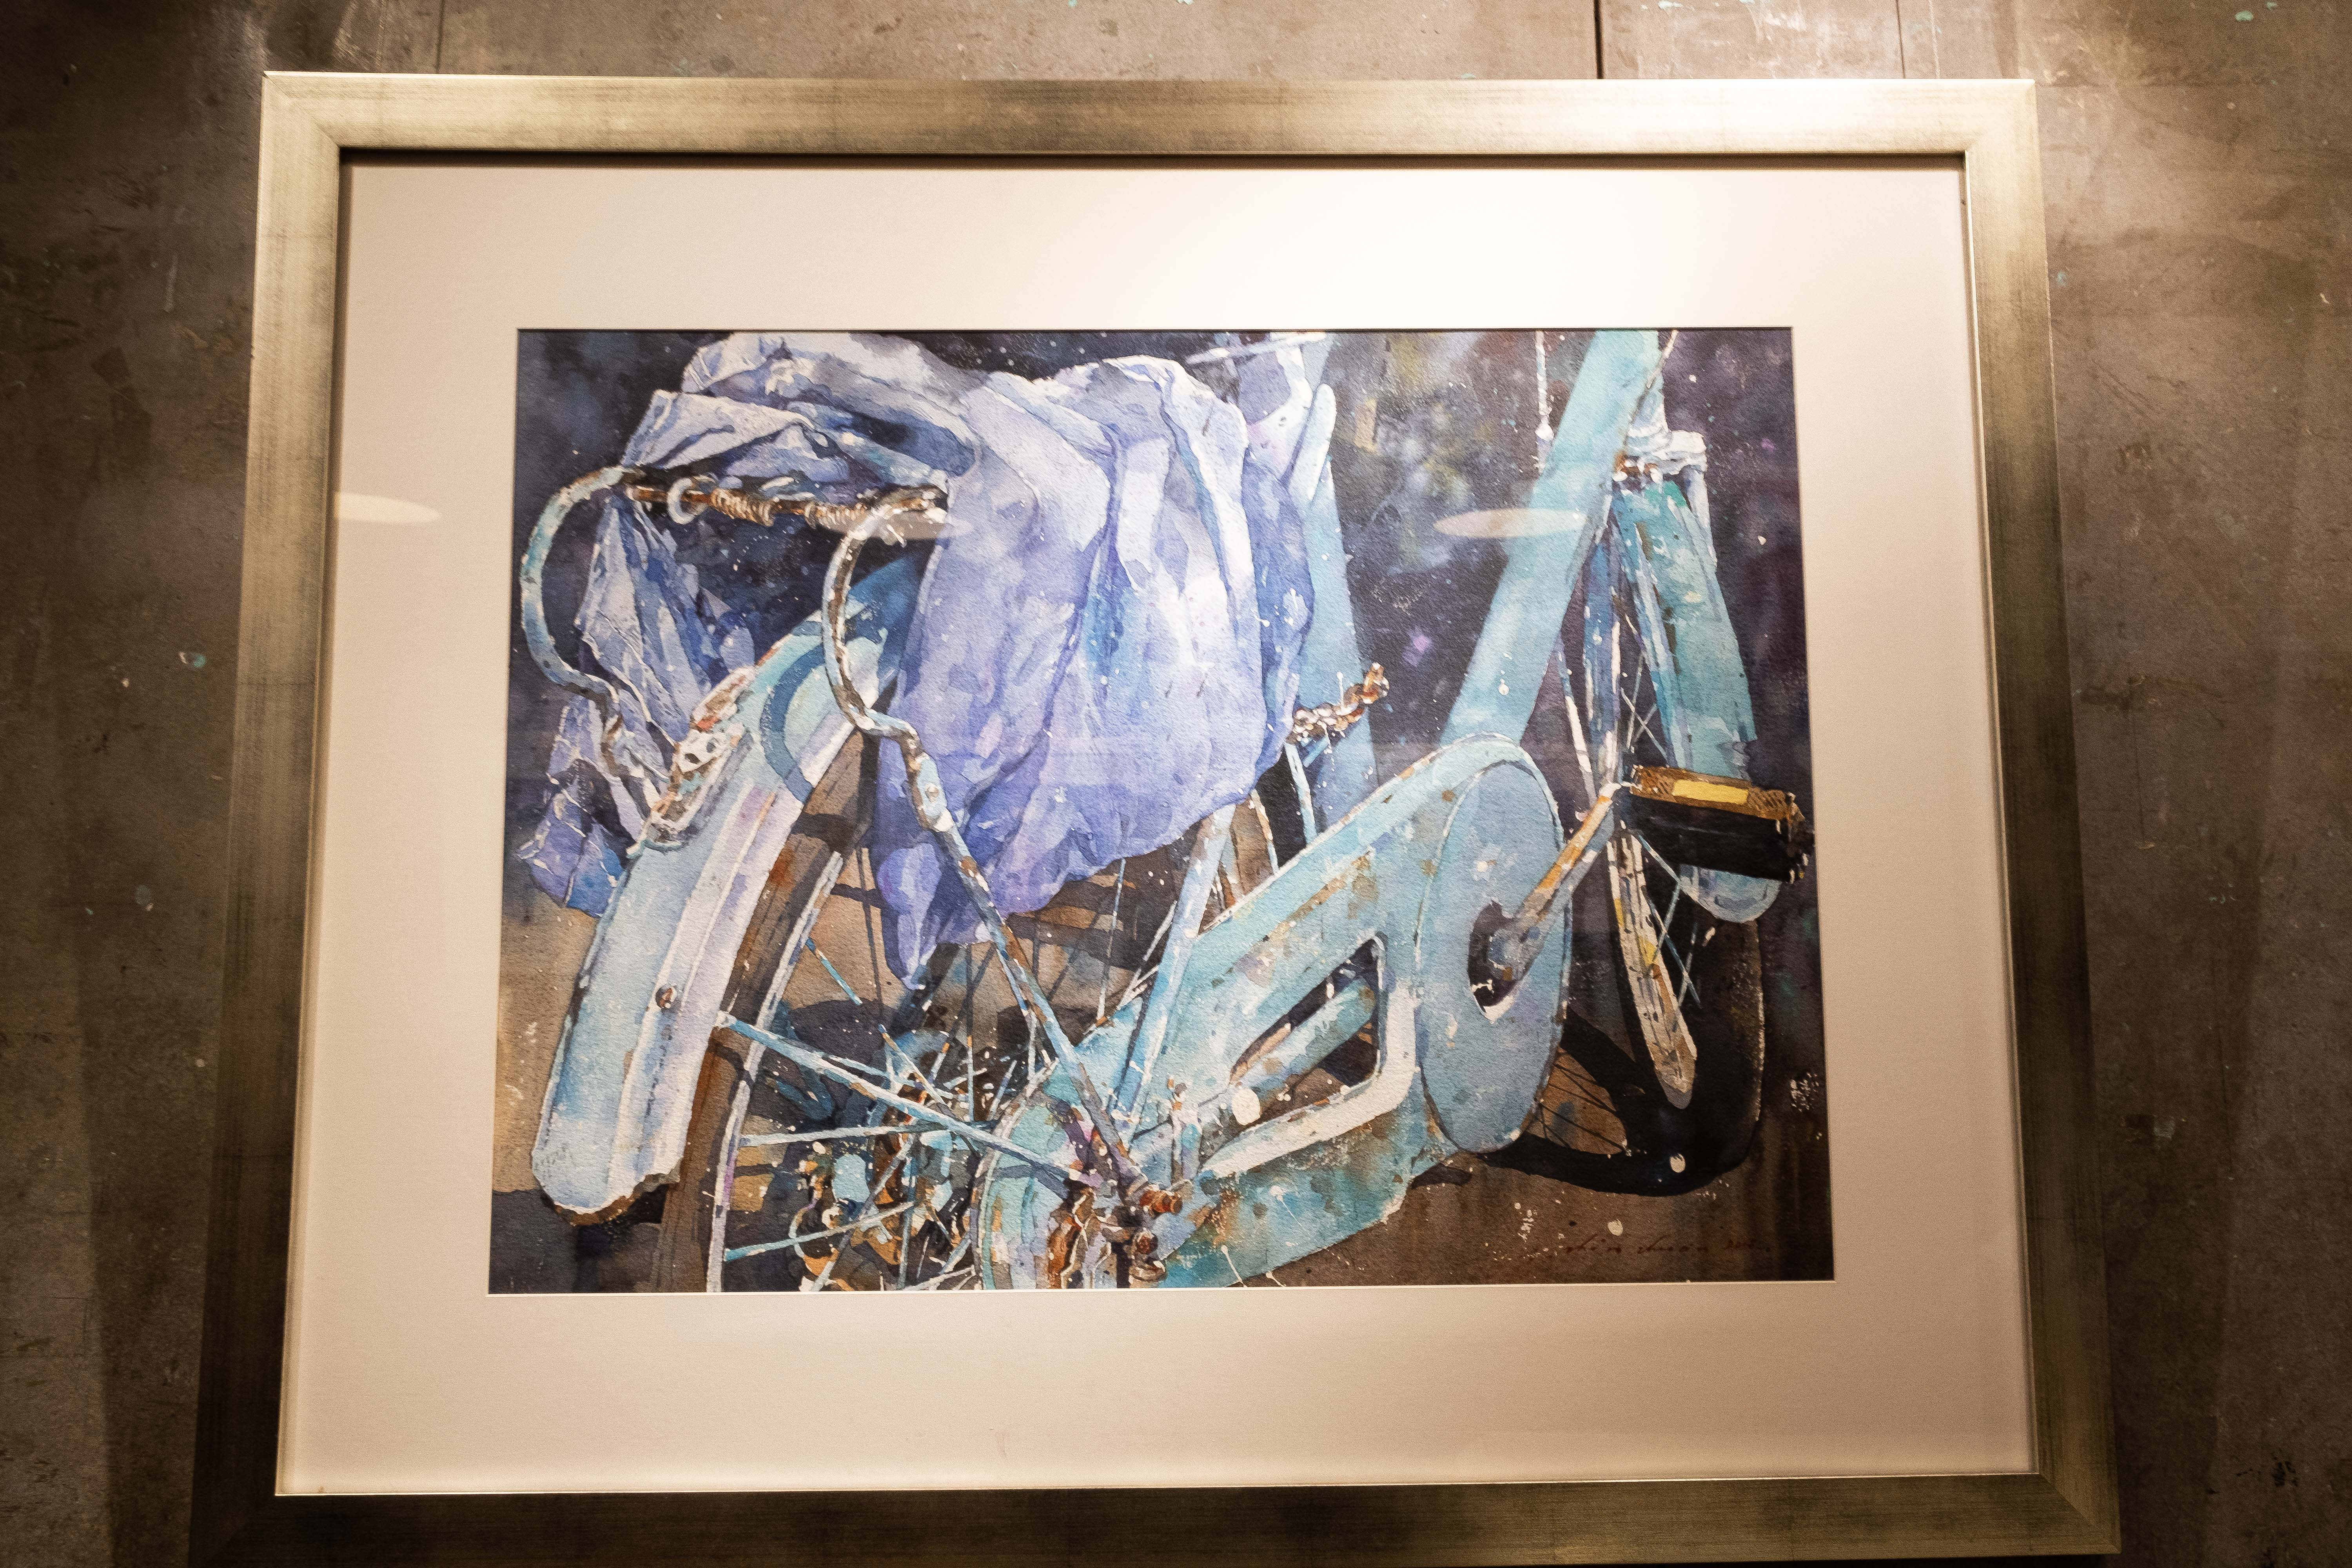 A painting done by Chow Chin Chuan of a bicycle